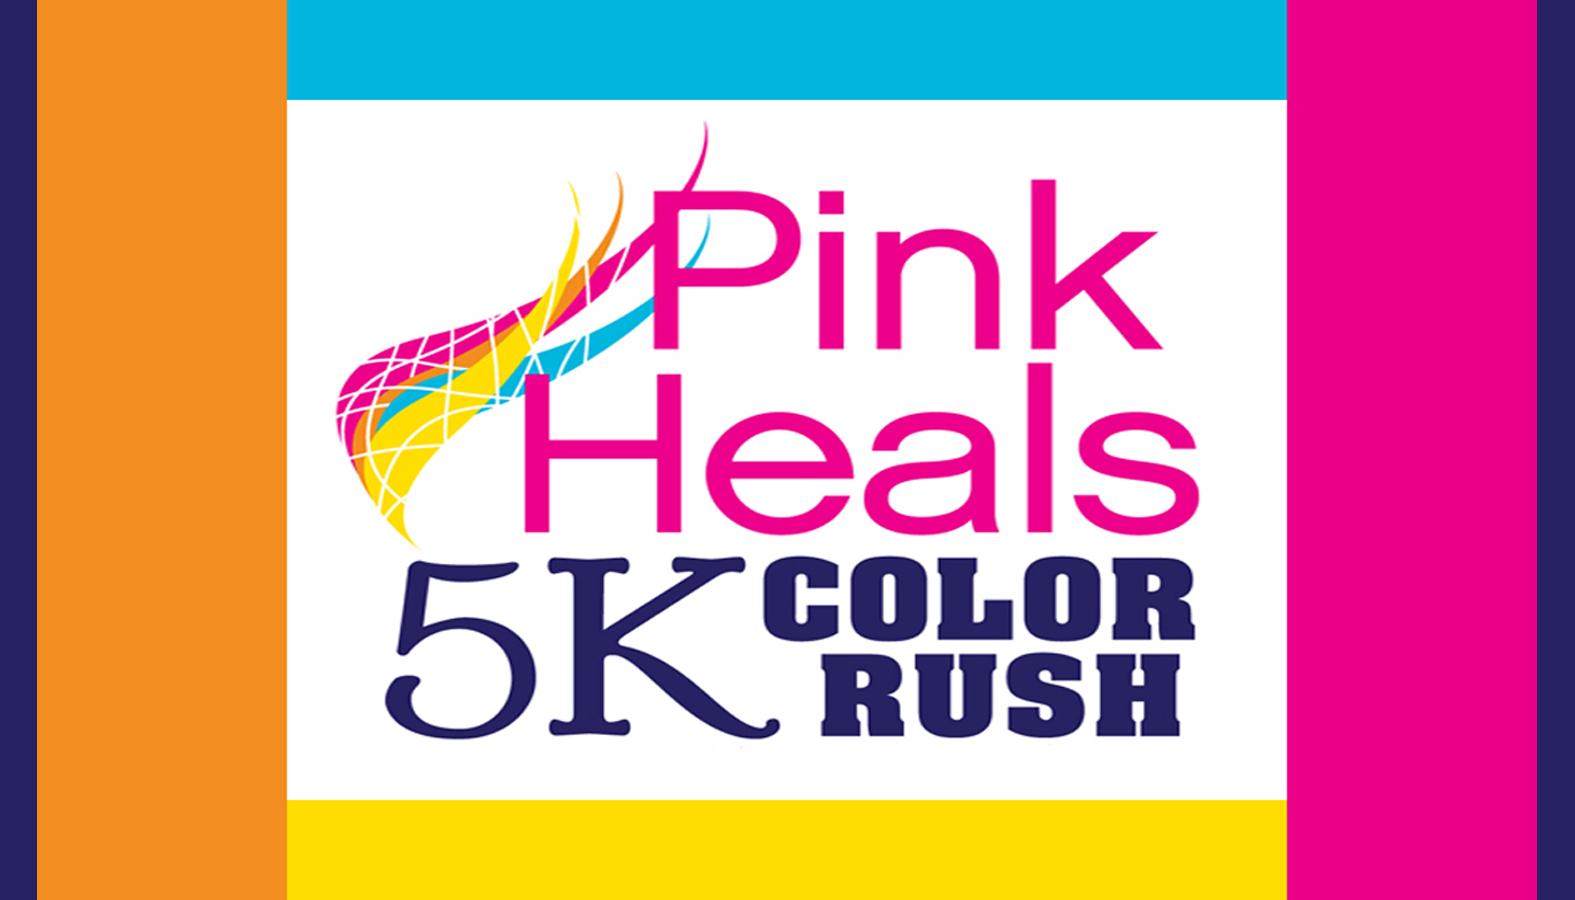 Color on online - Online Race Registration And Fundraising Software For Running Cycling And Triathlons Imathlete